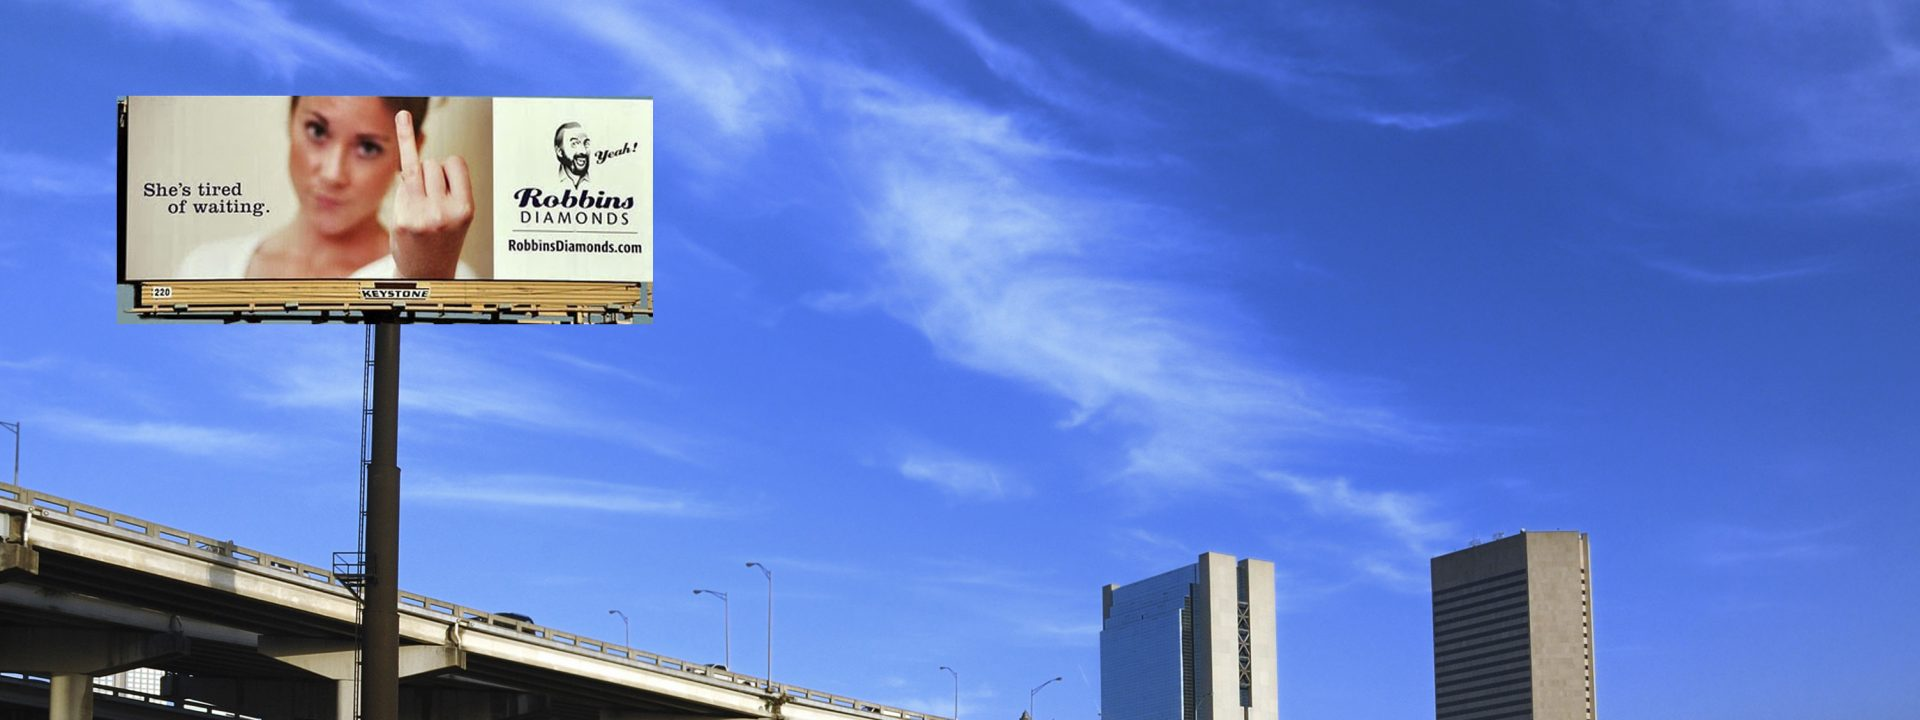 Highways With Billboards Have Three Times As Many Accidents: Don't Waste the Ad Space!